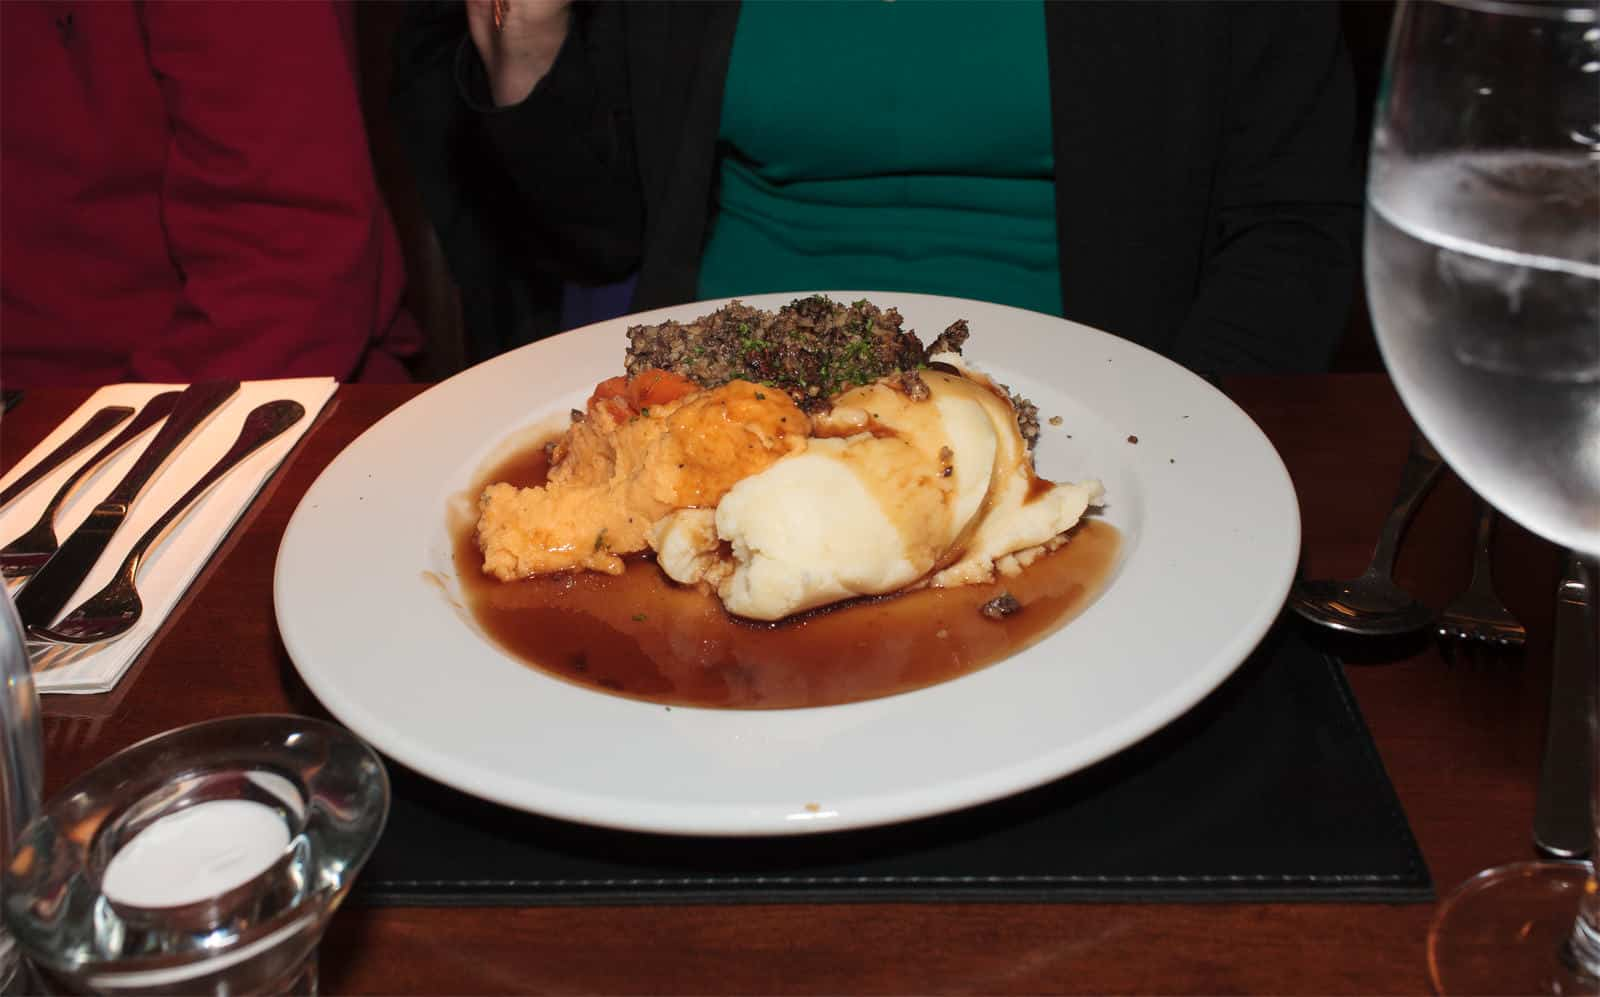 Haggis served at The George